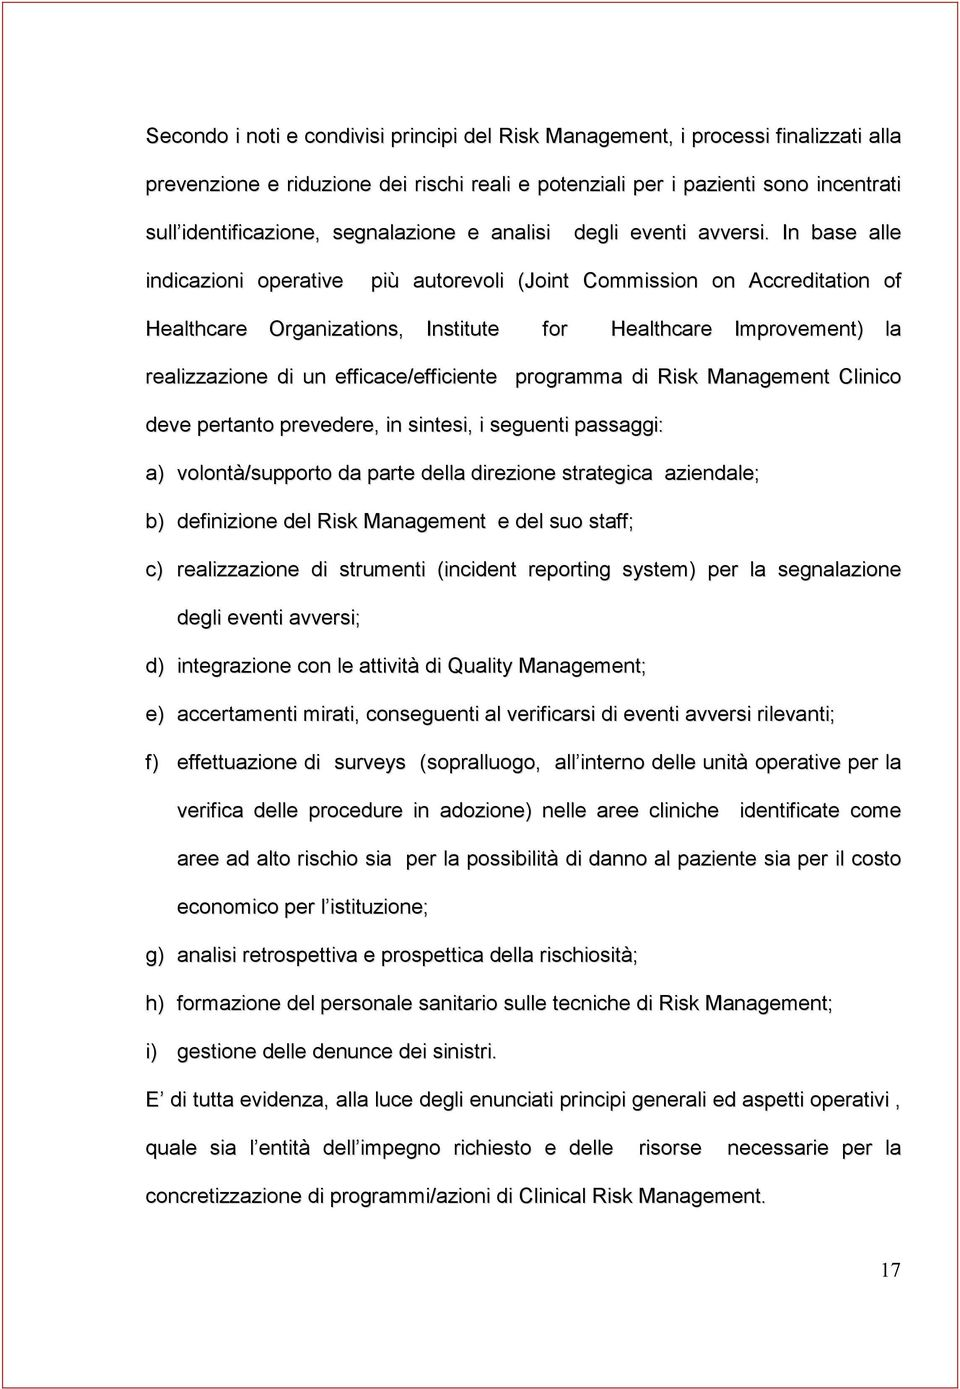 In base alle indicazioni operative più autorevoli (Joint Commission on Accreditation of Healthcare Organizations, Institute for Healthcare Improvement) la realizzazione di un efficace/efficiente